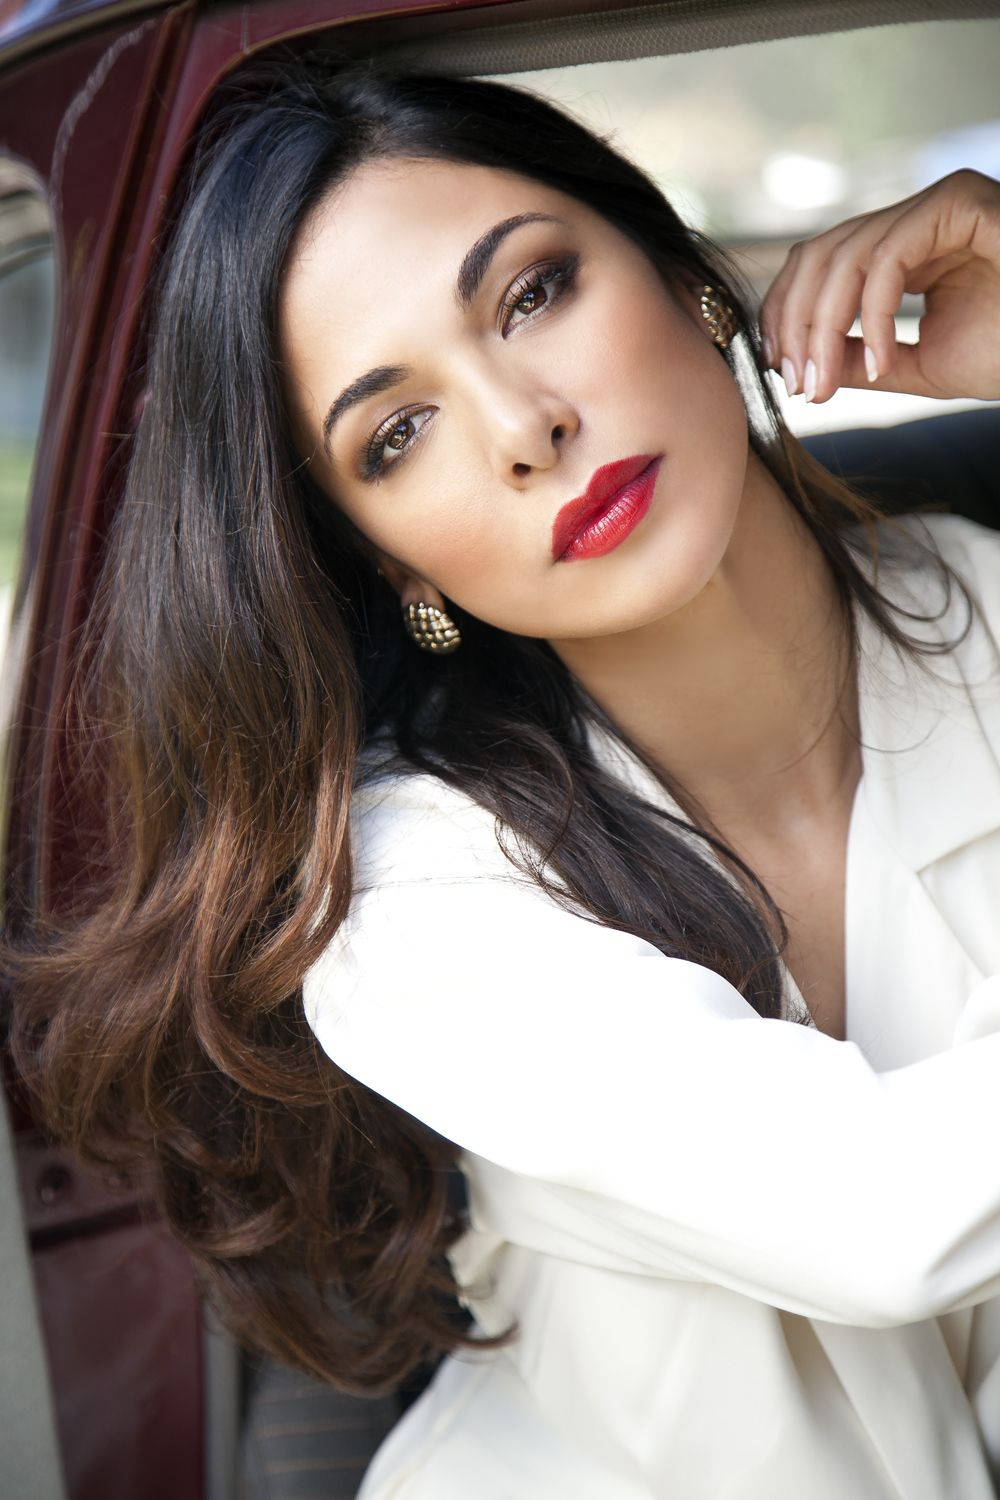 Moran Atias by Ian Fisher | Perfect red lips, Moran atias ...